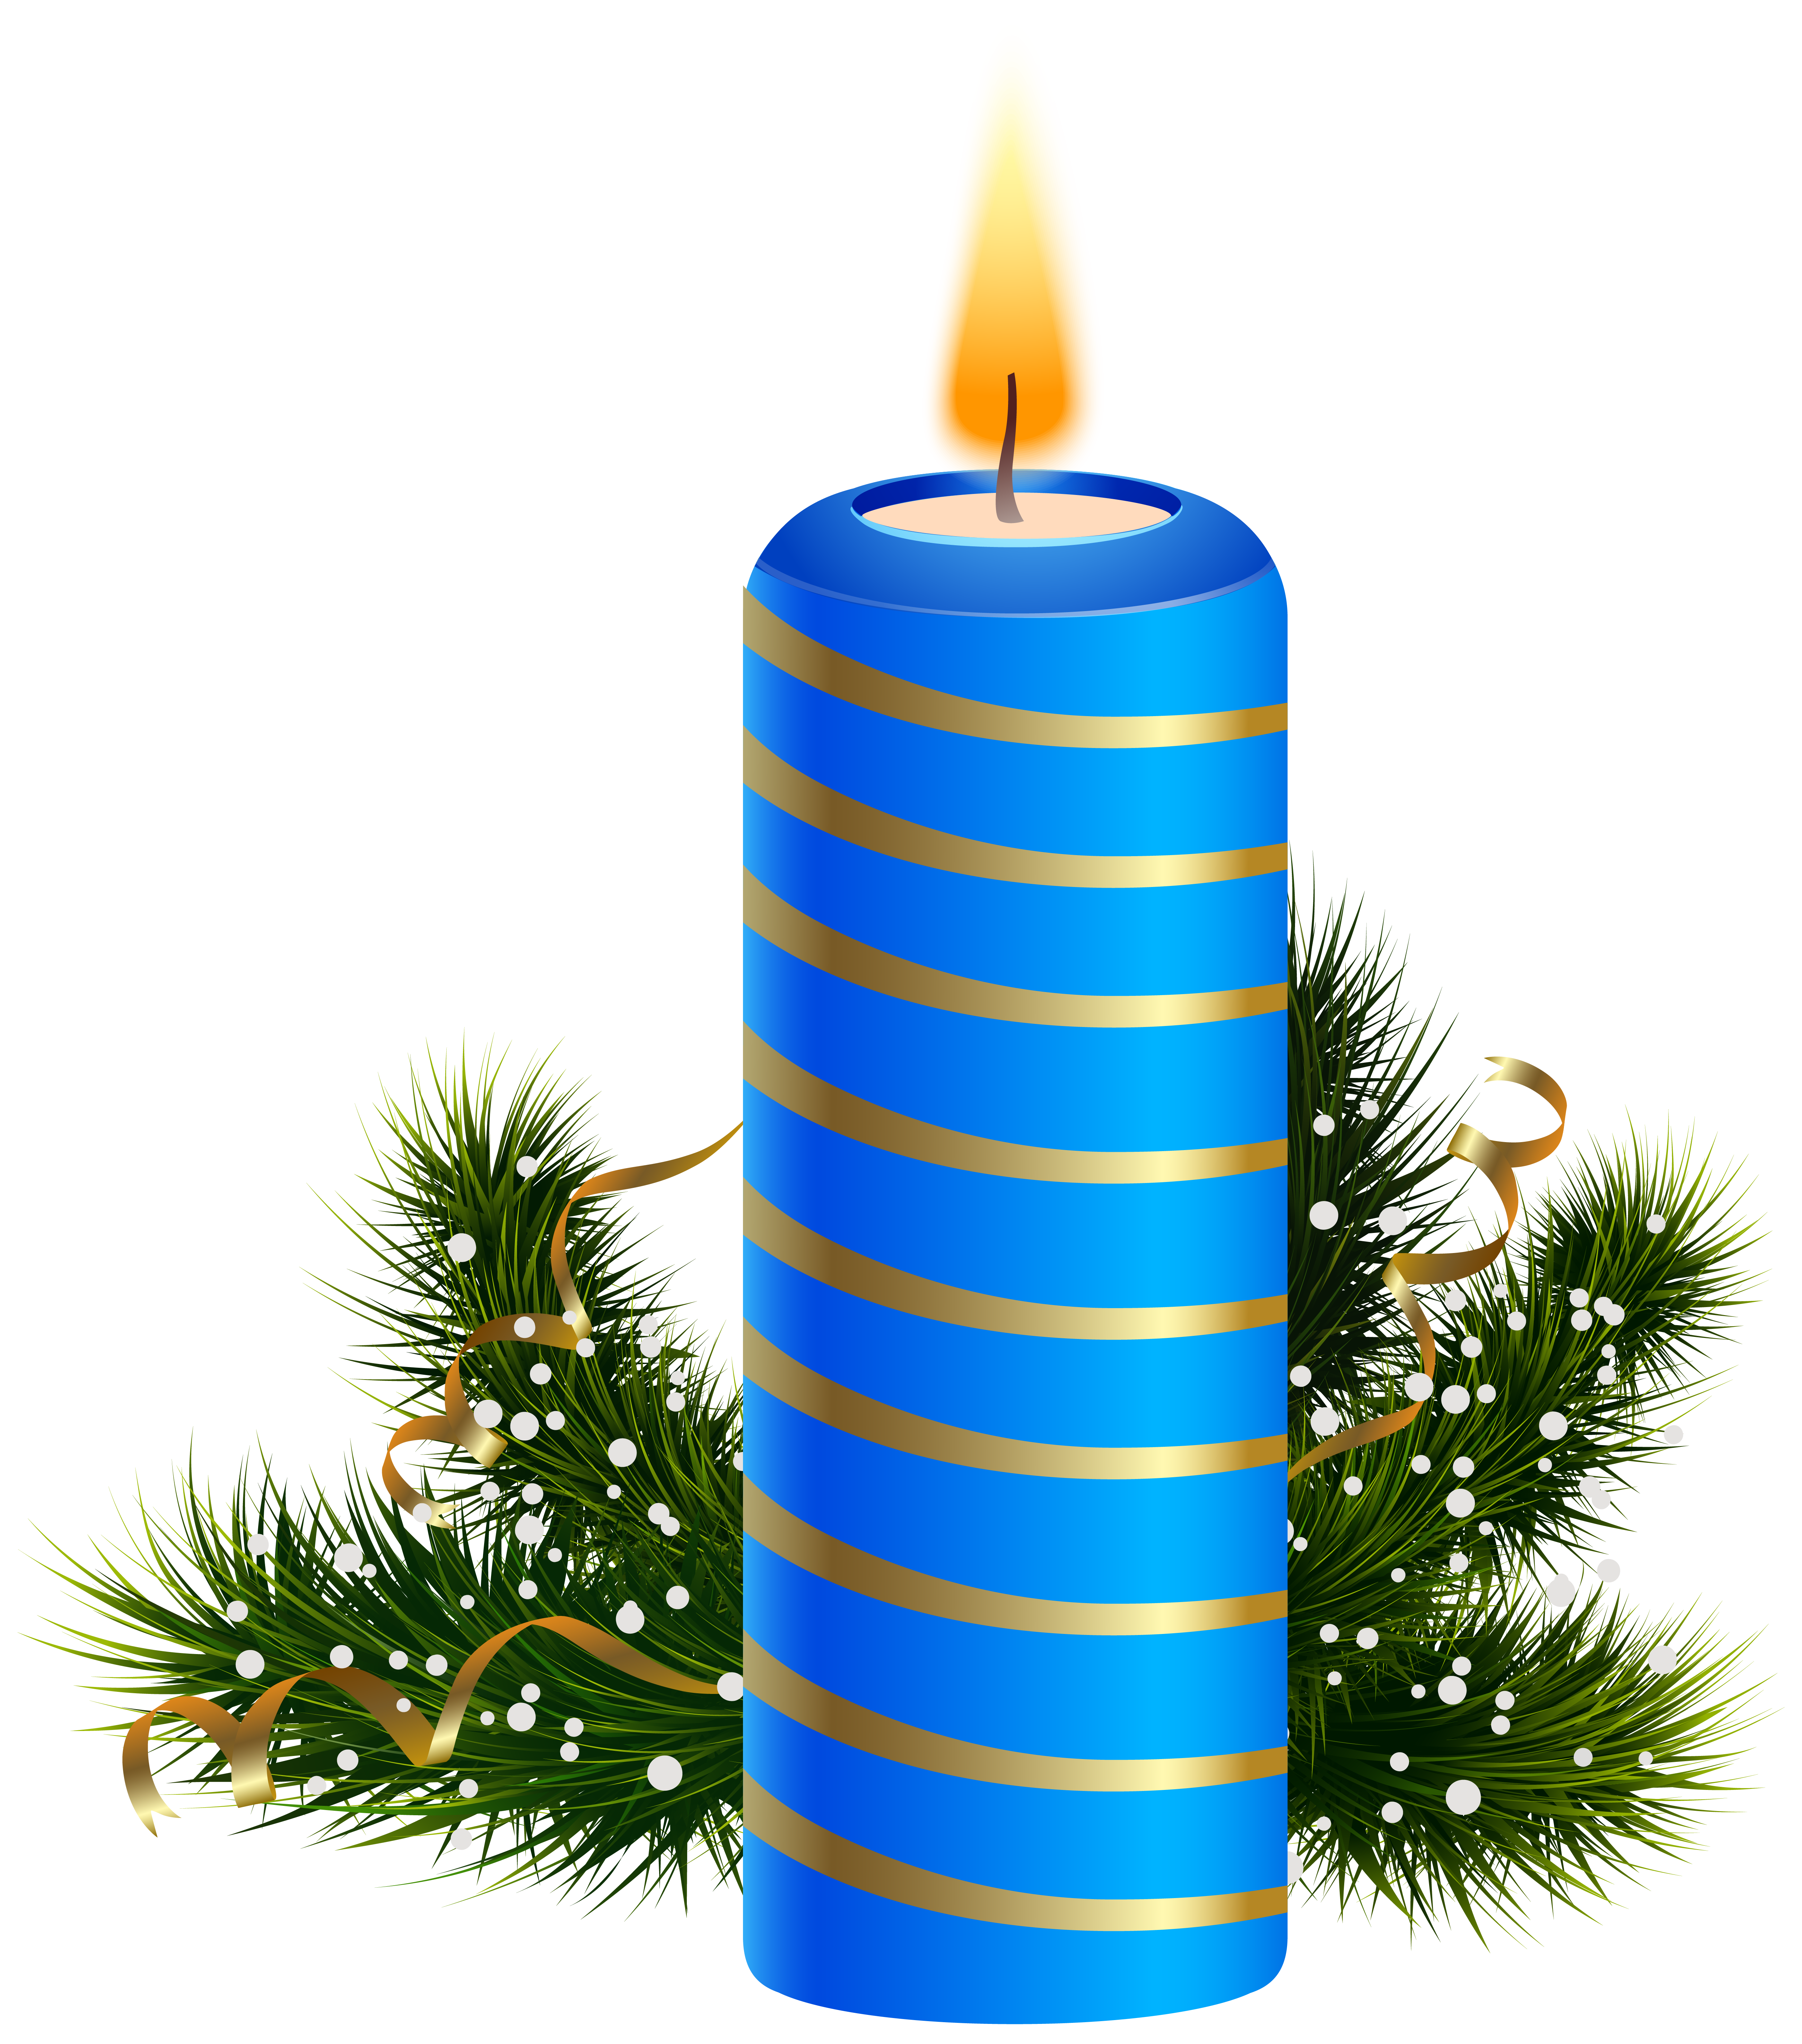 image transparent library Transparent candle death. Not feeling holiday cheer